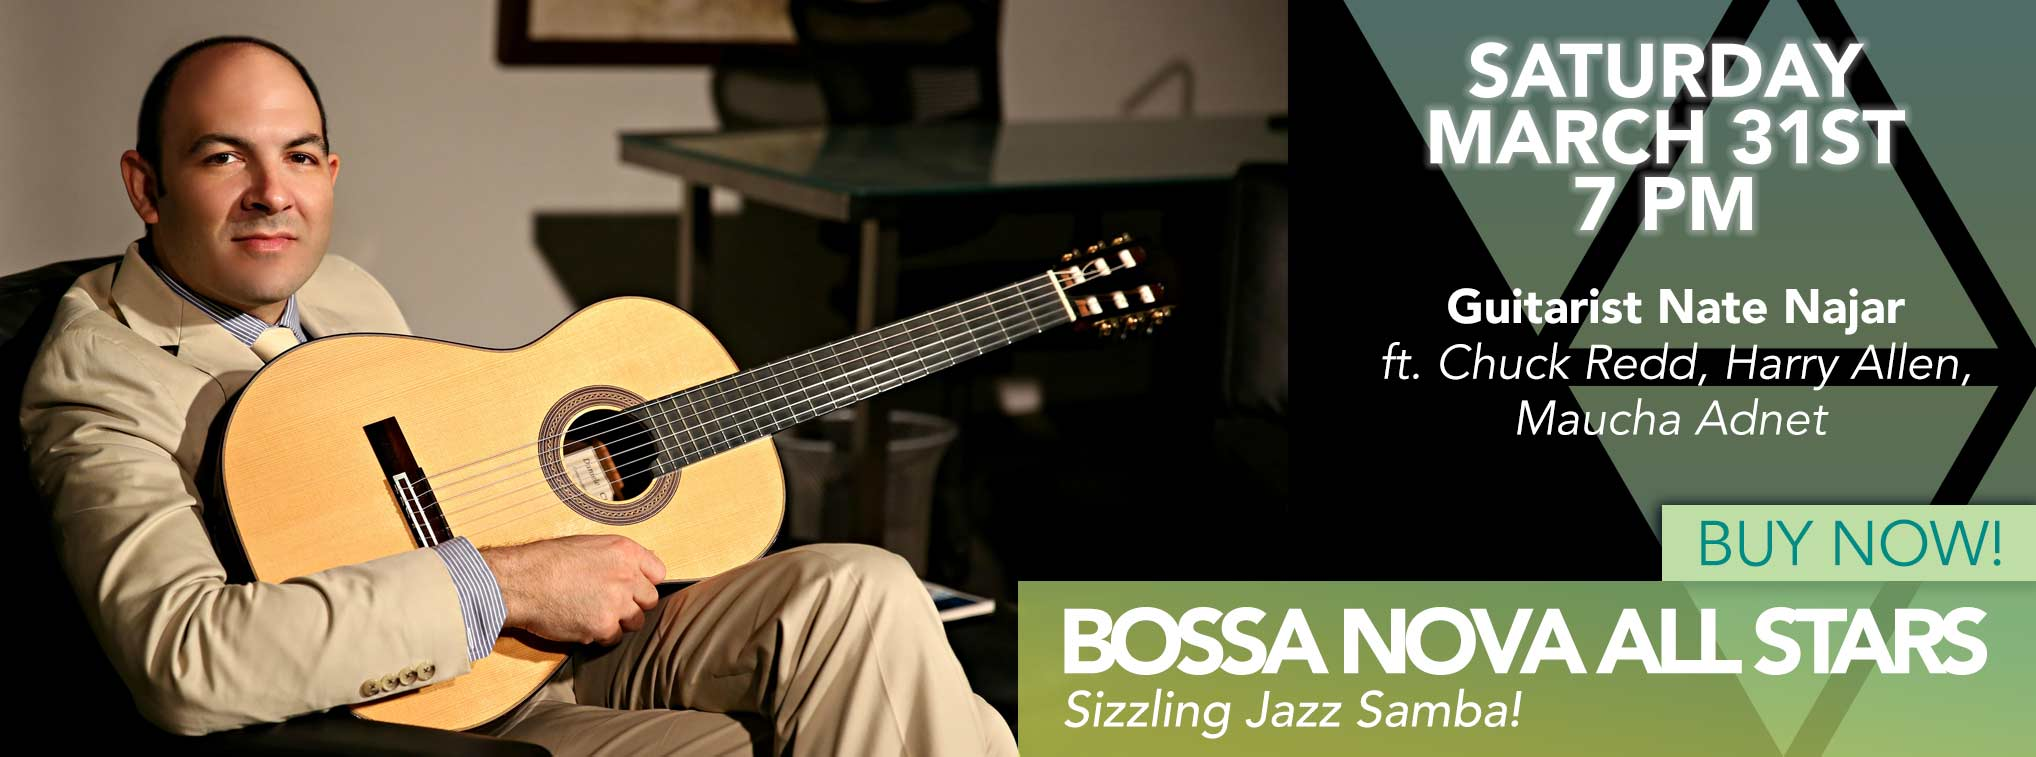 Bossa Nova All Stars - Saturday March 31st 7PM